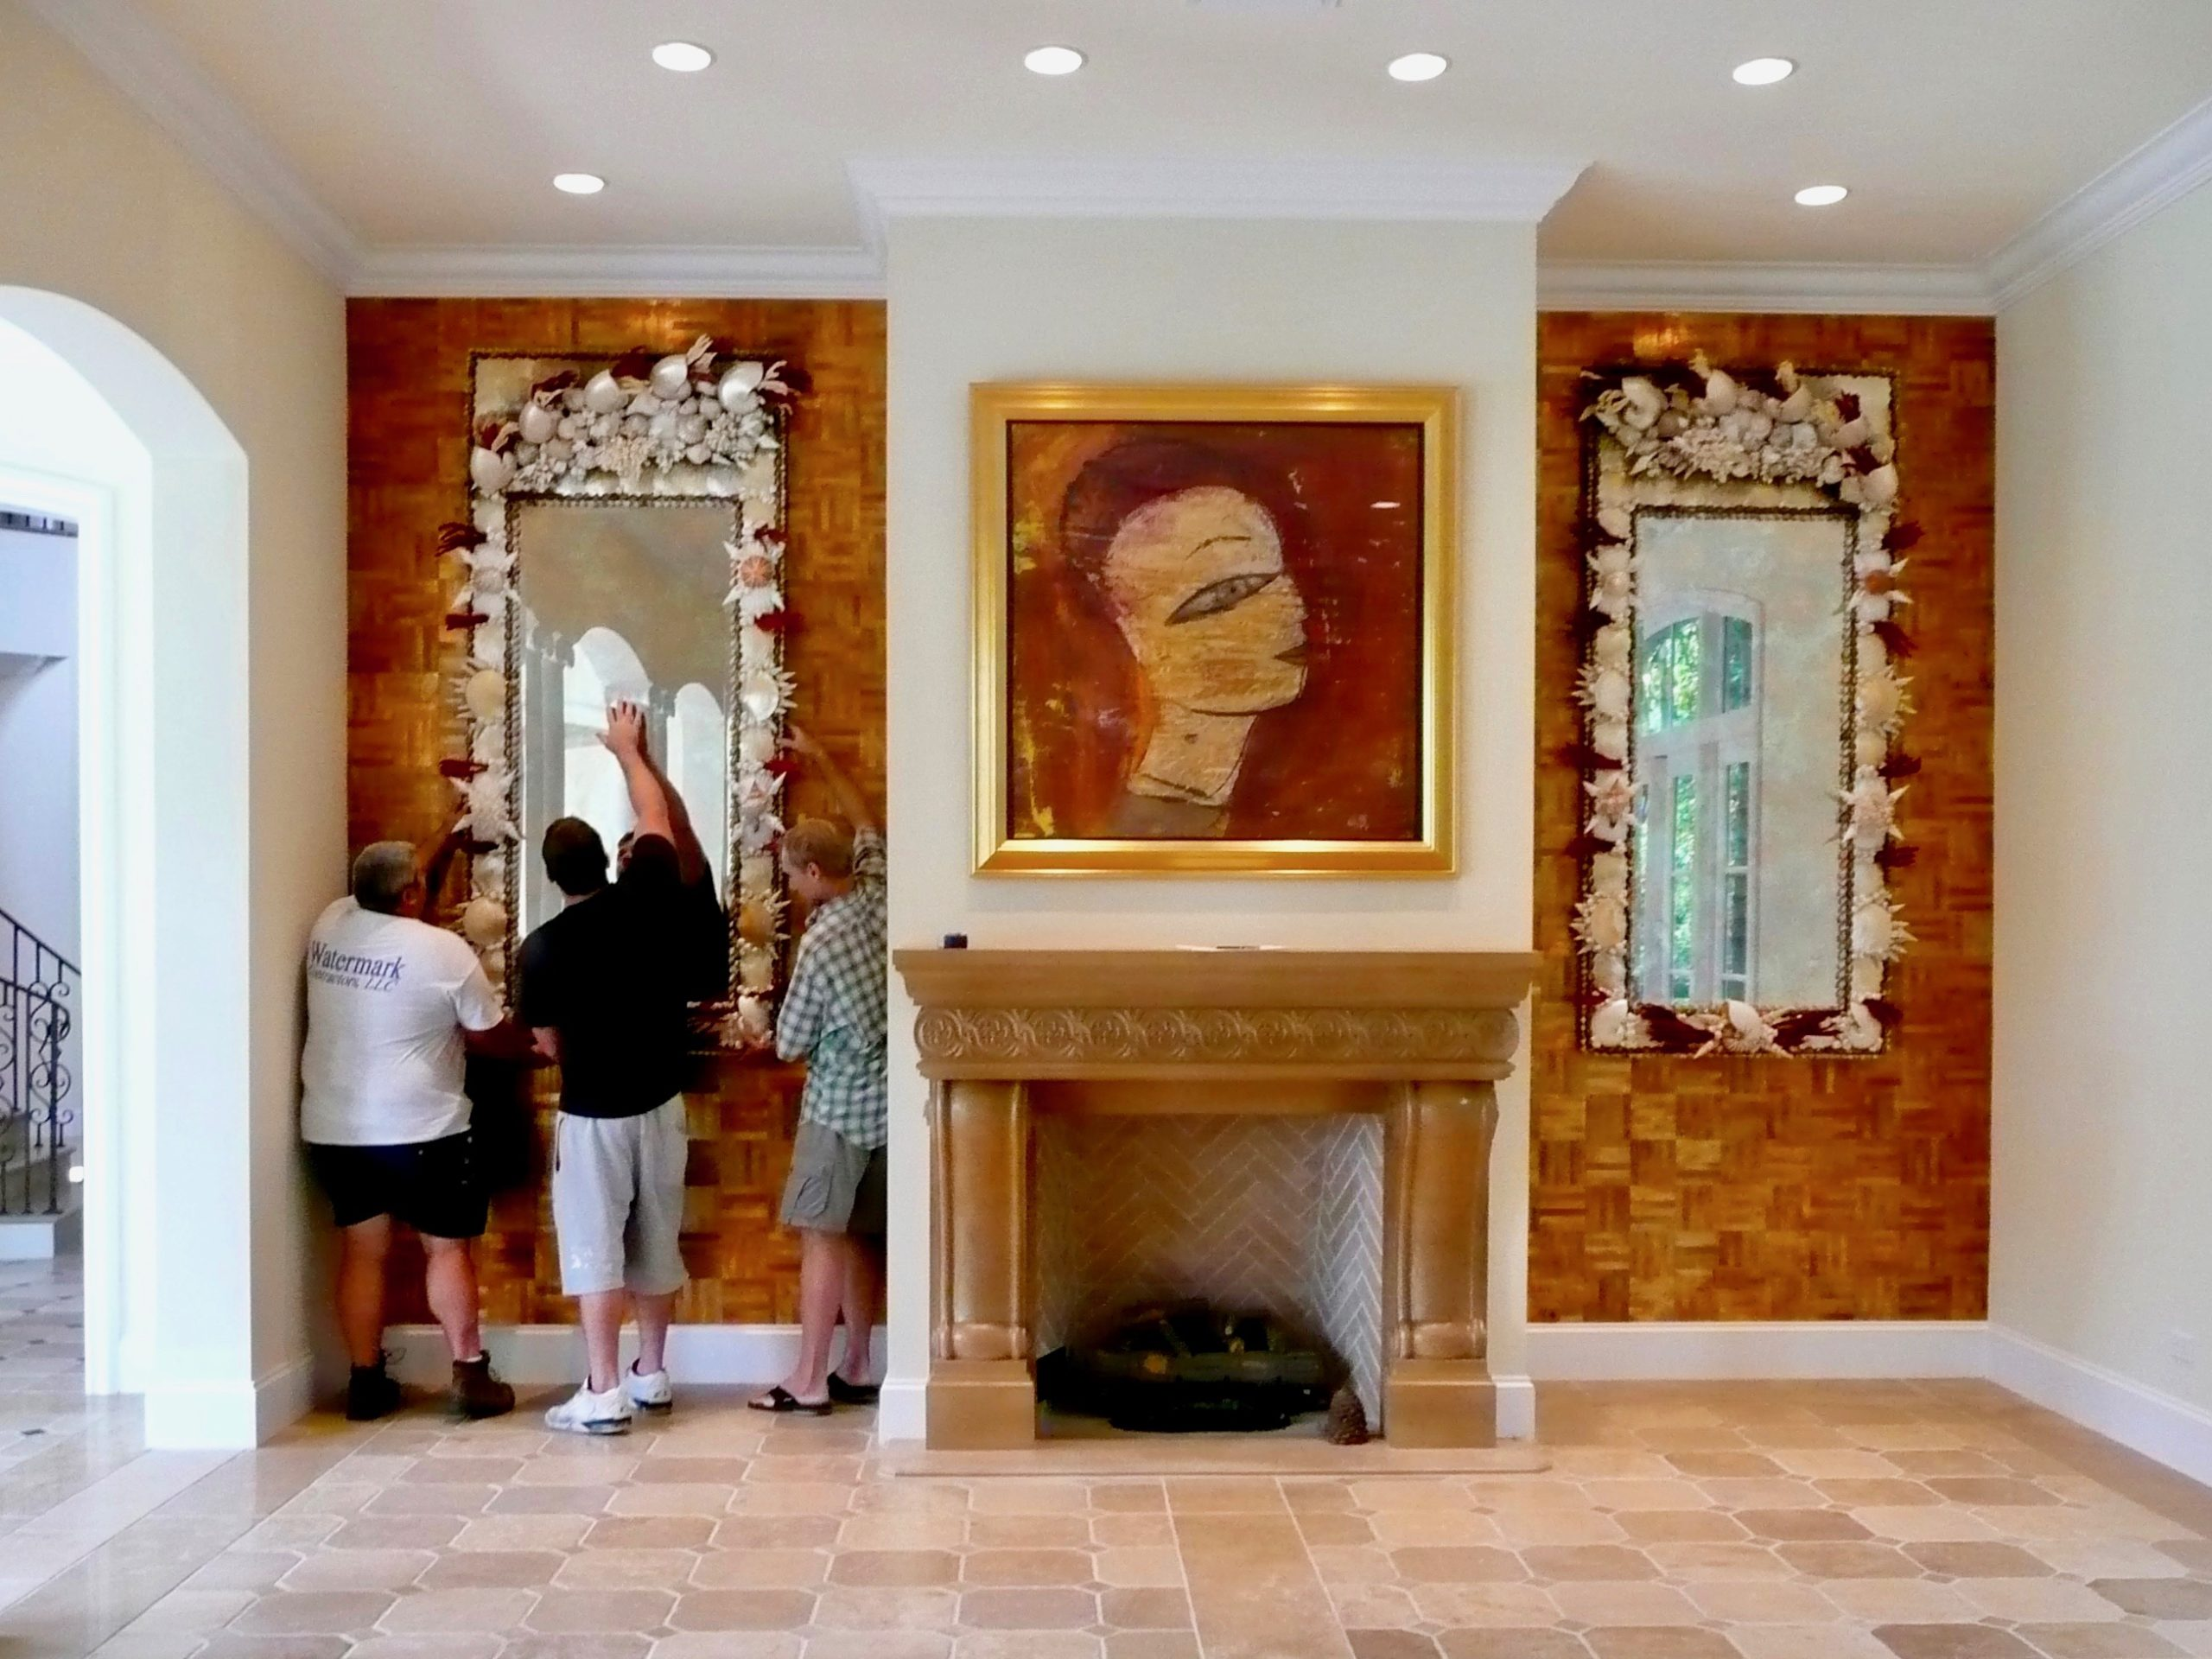 A room with a fireplace with a large painting of a face and three men hanging a huge shell mirror on the wall next to it.